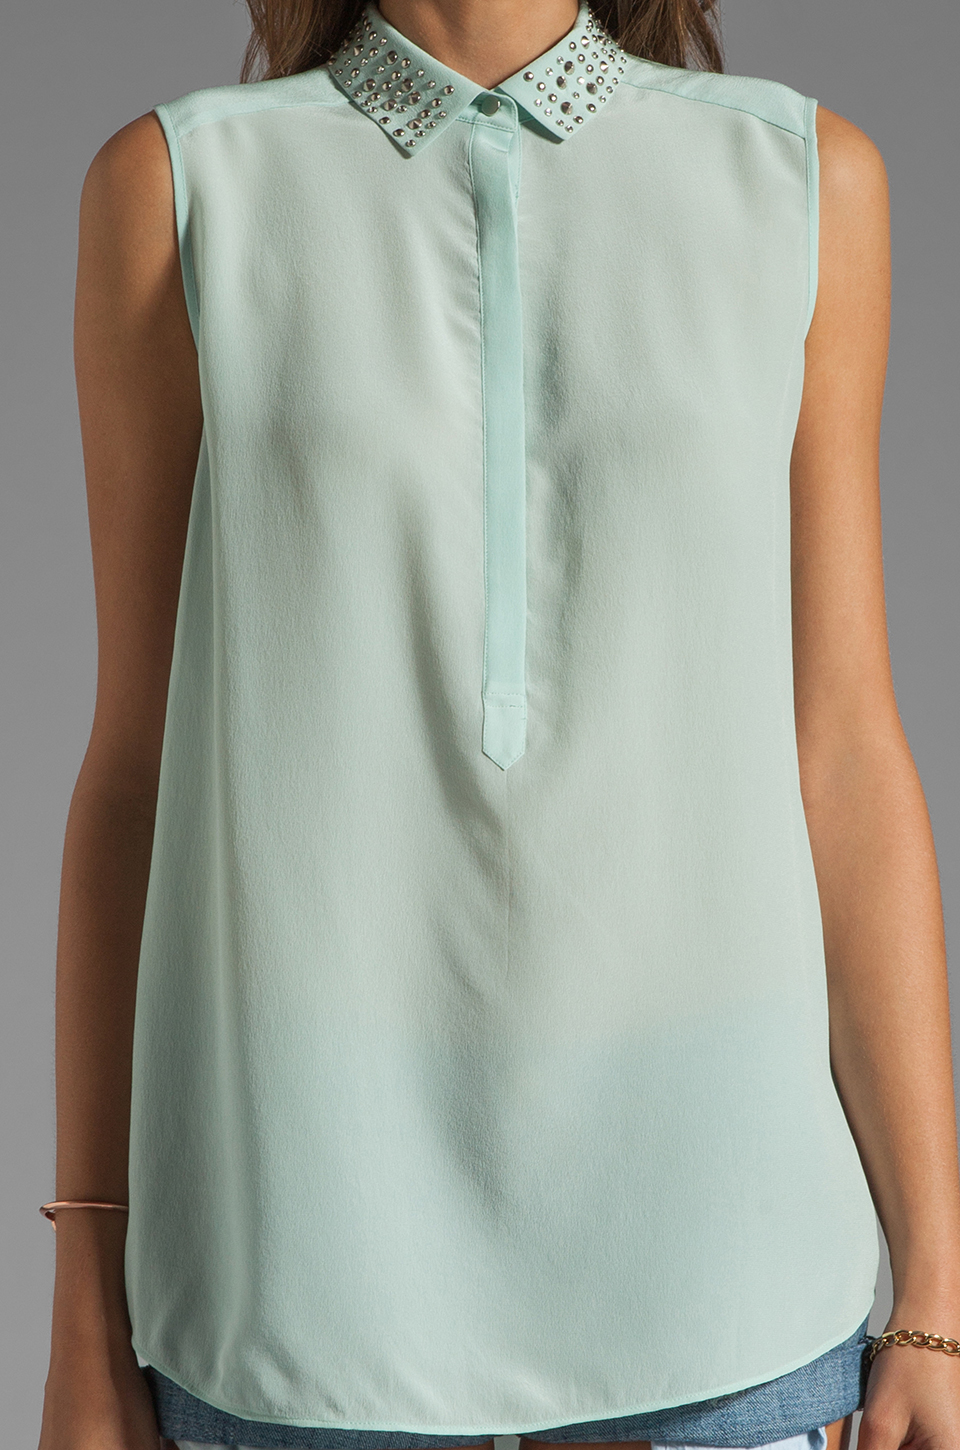 Rebecca Taylor Beaded Collar Top in Mist